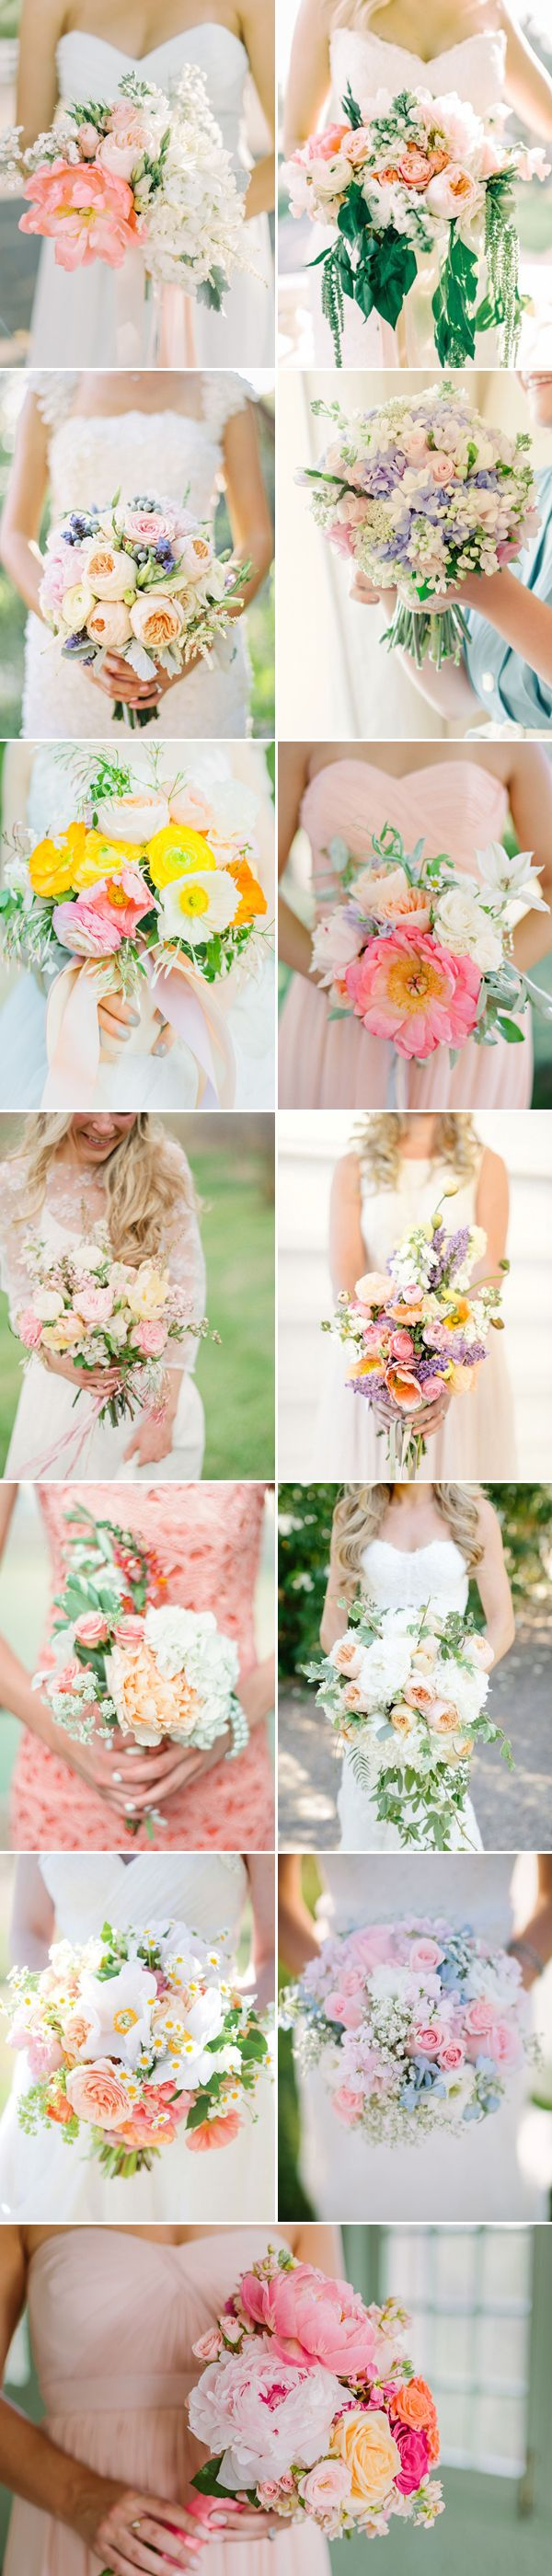 Romantic-Spring-Pastel-Wedding-Bouquets.jpg 600×2,800 ピクセル